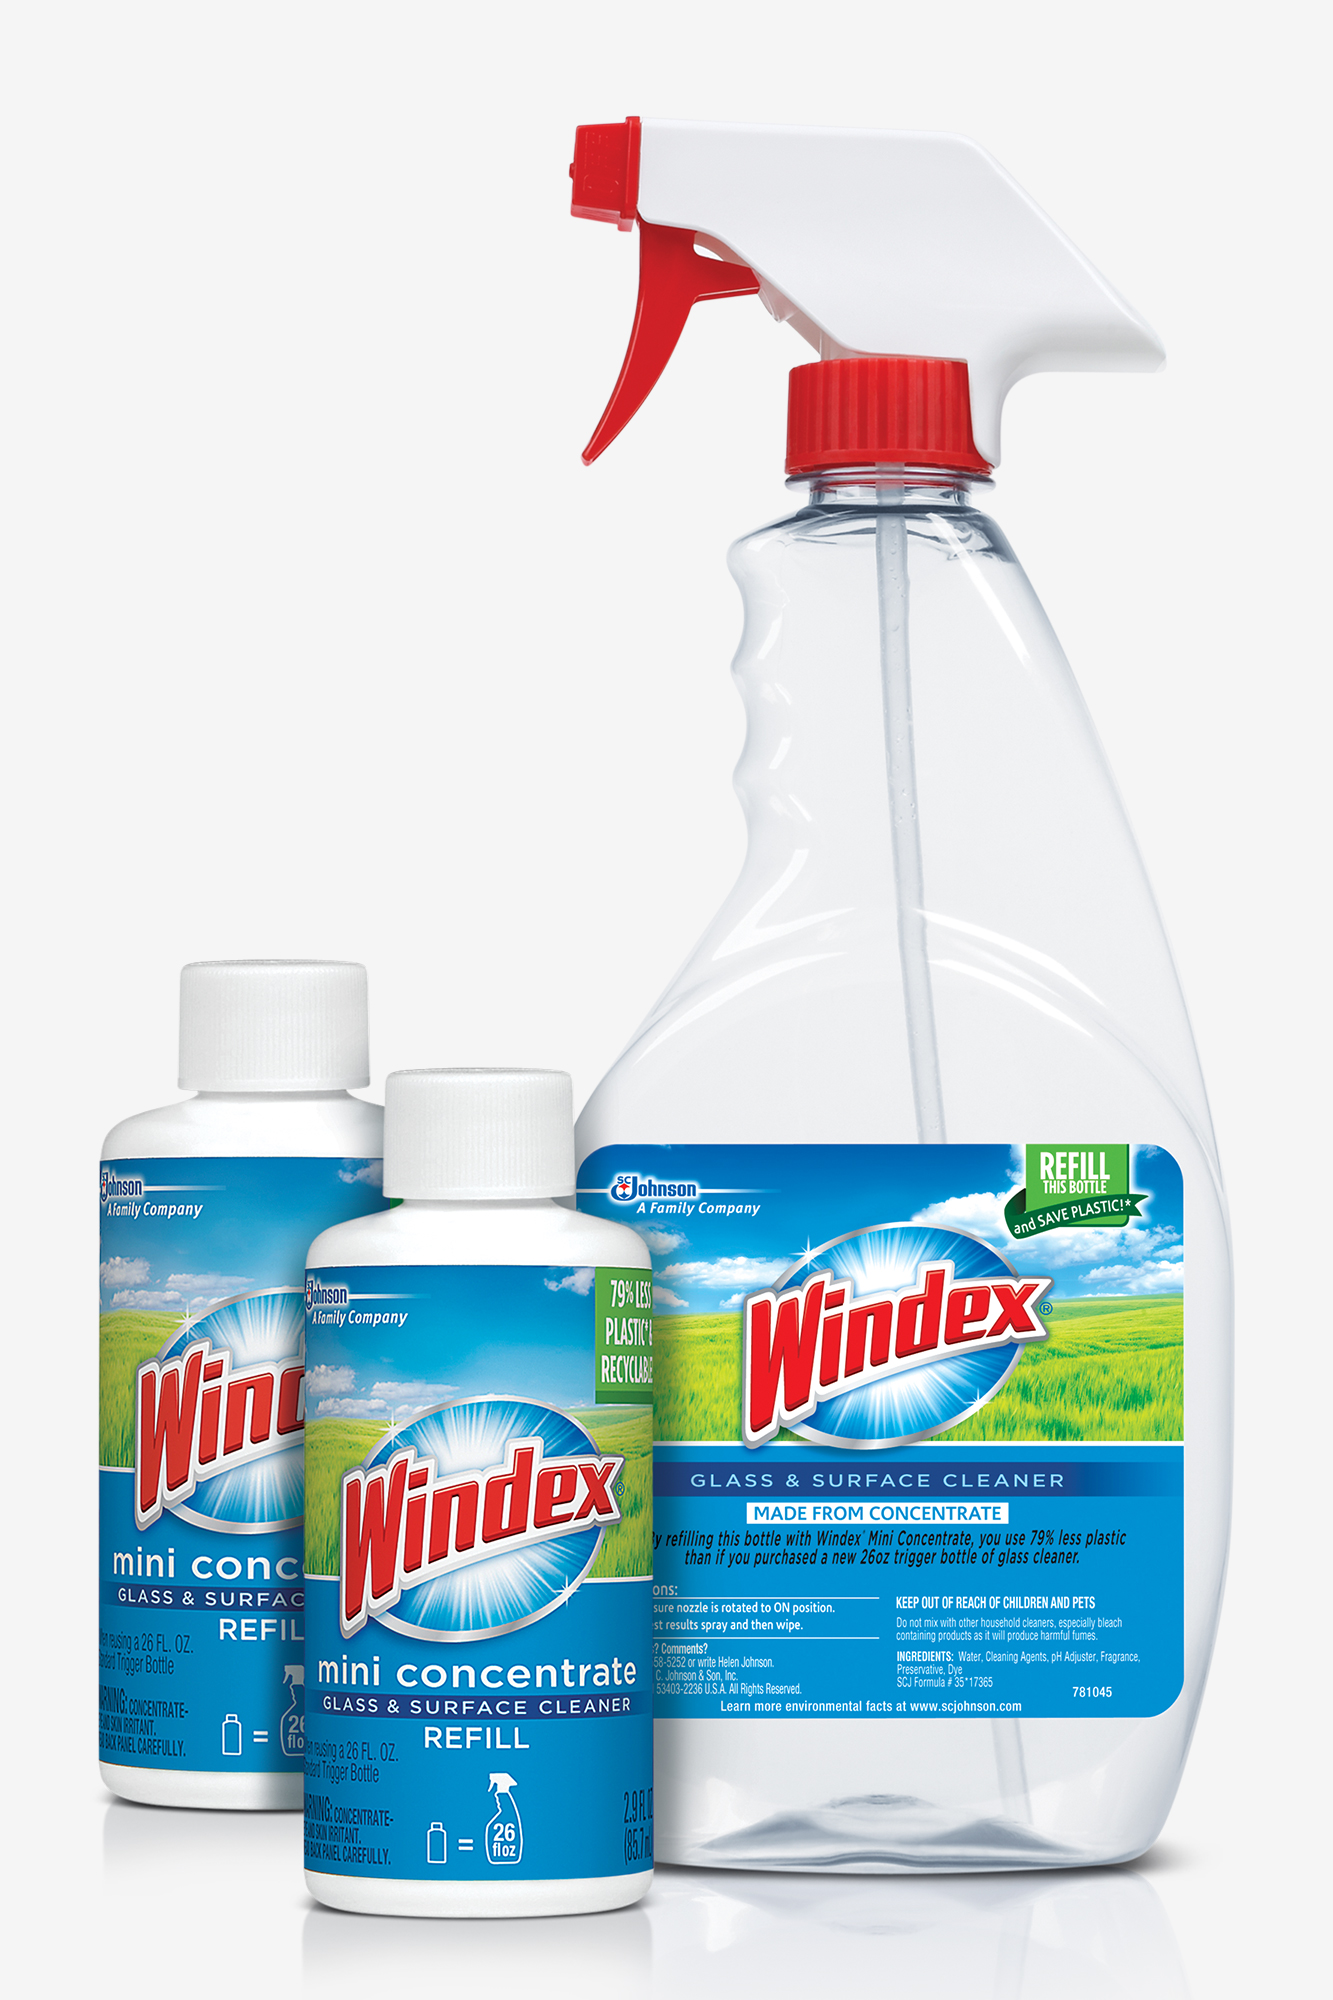 Sustainability research led to the creation of Windex Mini Concentrates